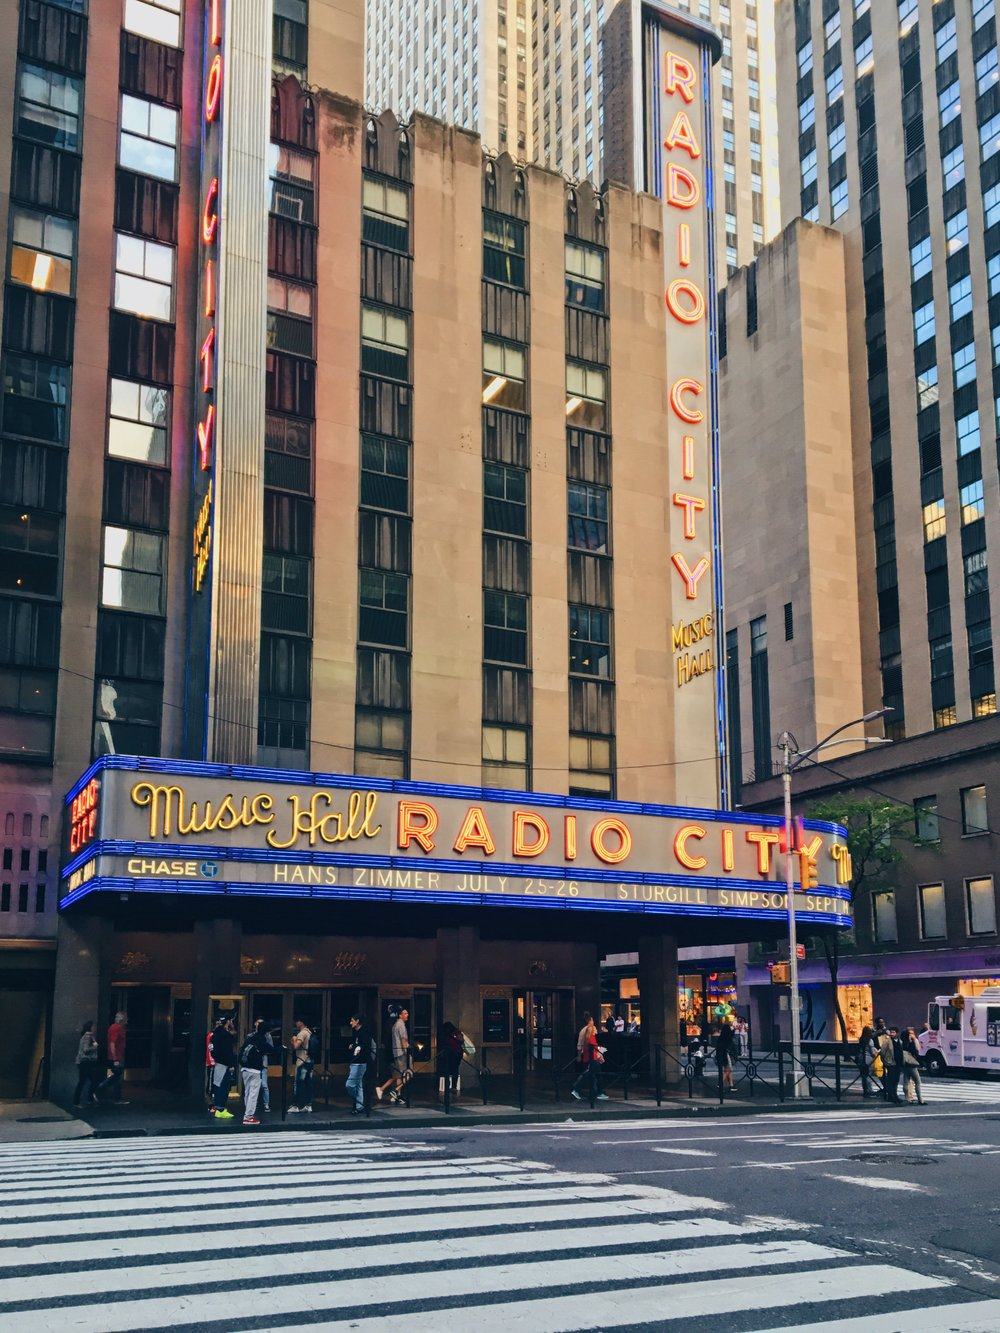 radio city hall, venue for the most iconic musicians